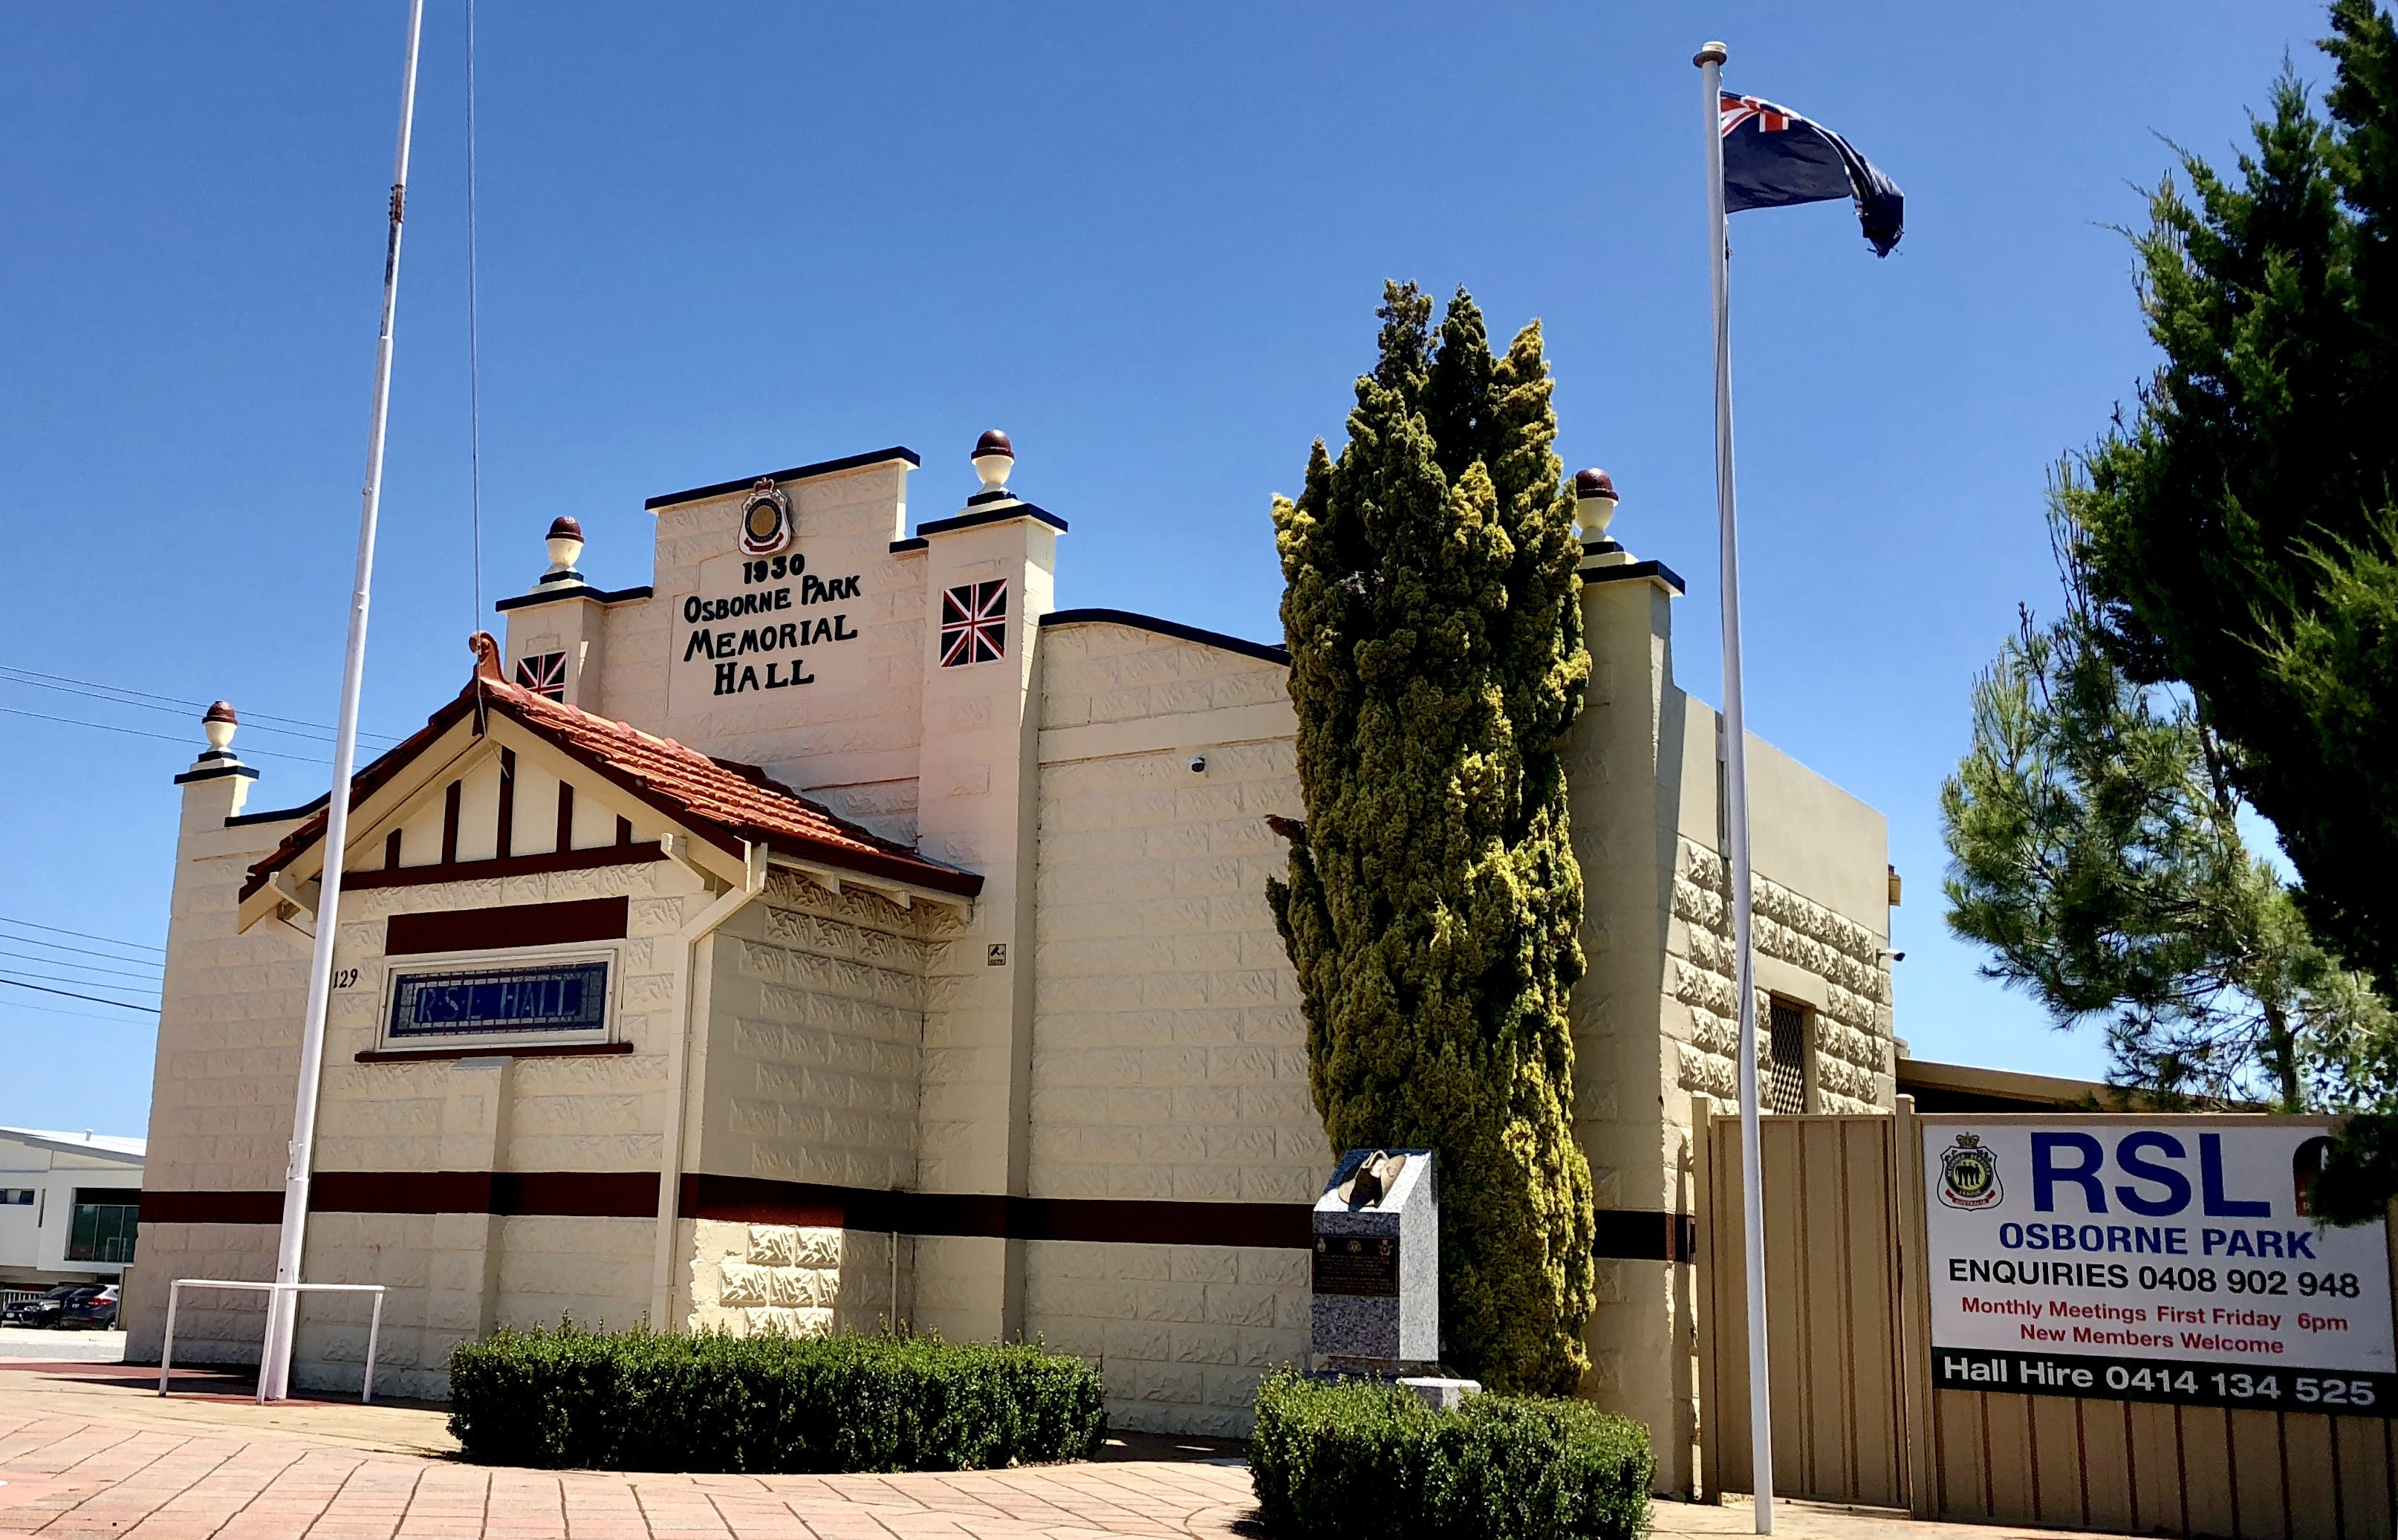 Conference centre at Osborne Park RSL Sub-Branch Memorial Hall, image 1